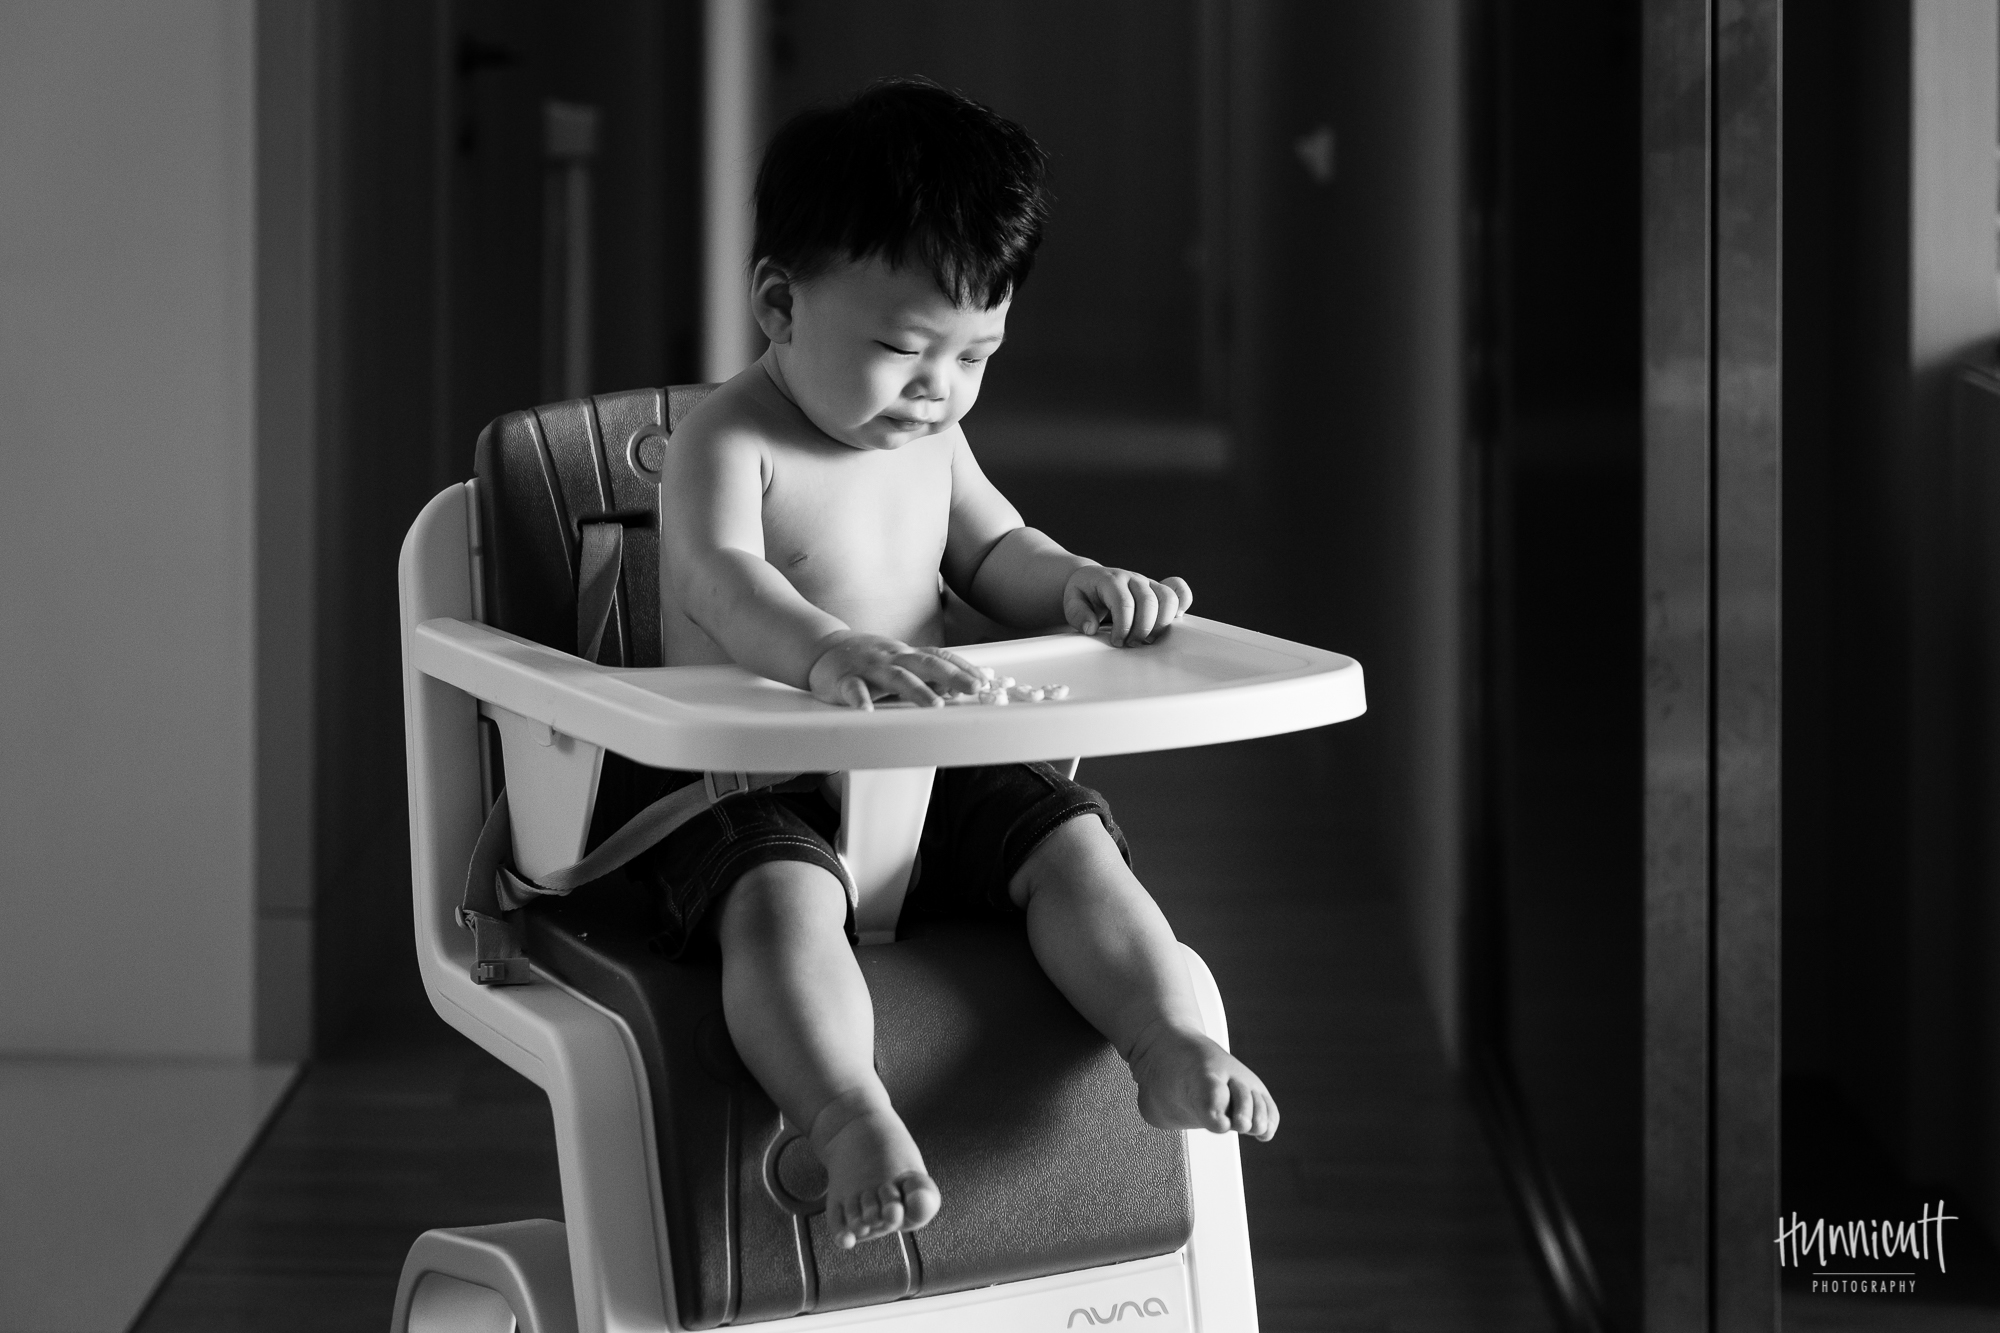 Indoor-Natural-Light-Family-HunnicuttPhotography-RebeccaHunnicuttFarren-Taichung-Taiwan-17